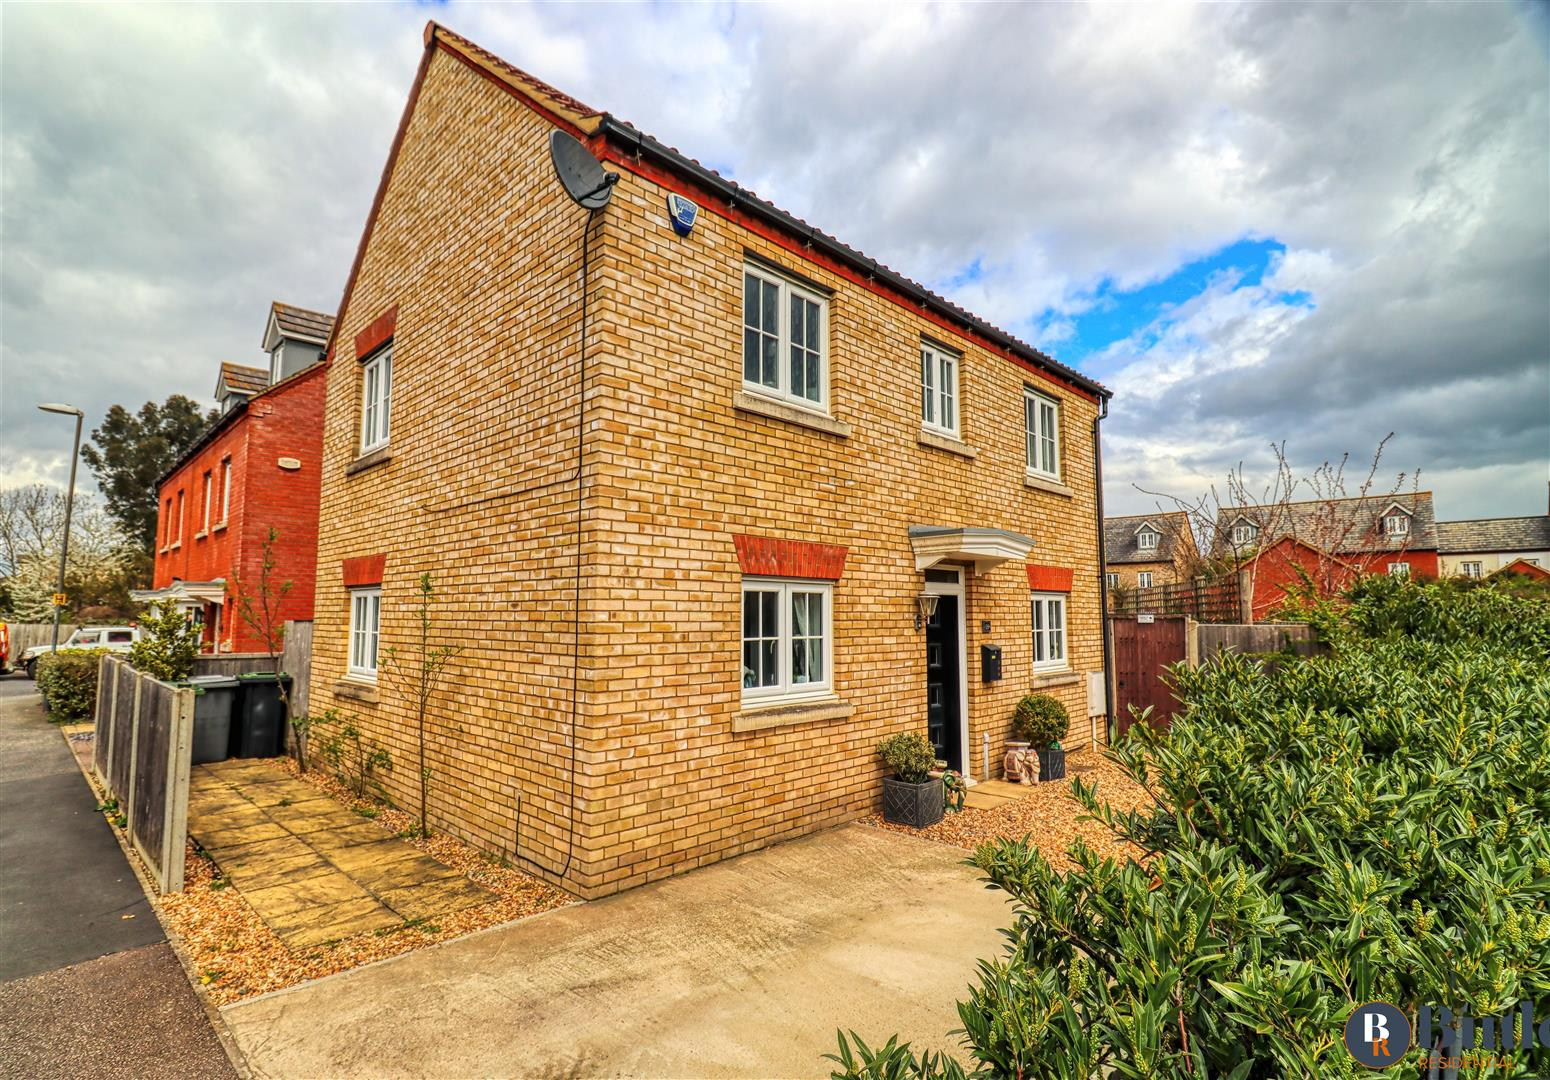 3 bed detached house for sale in Birch Grove, Henlow, SG16